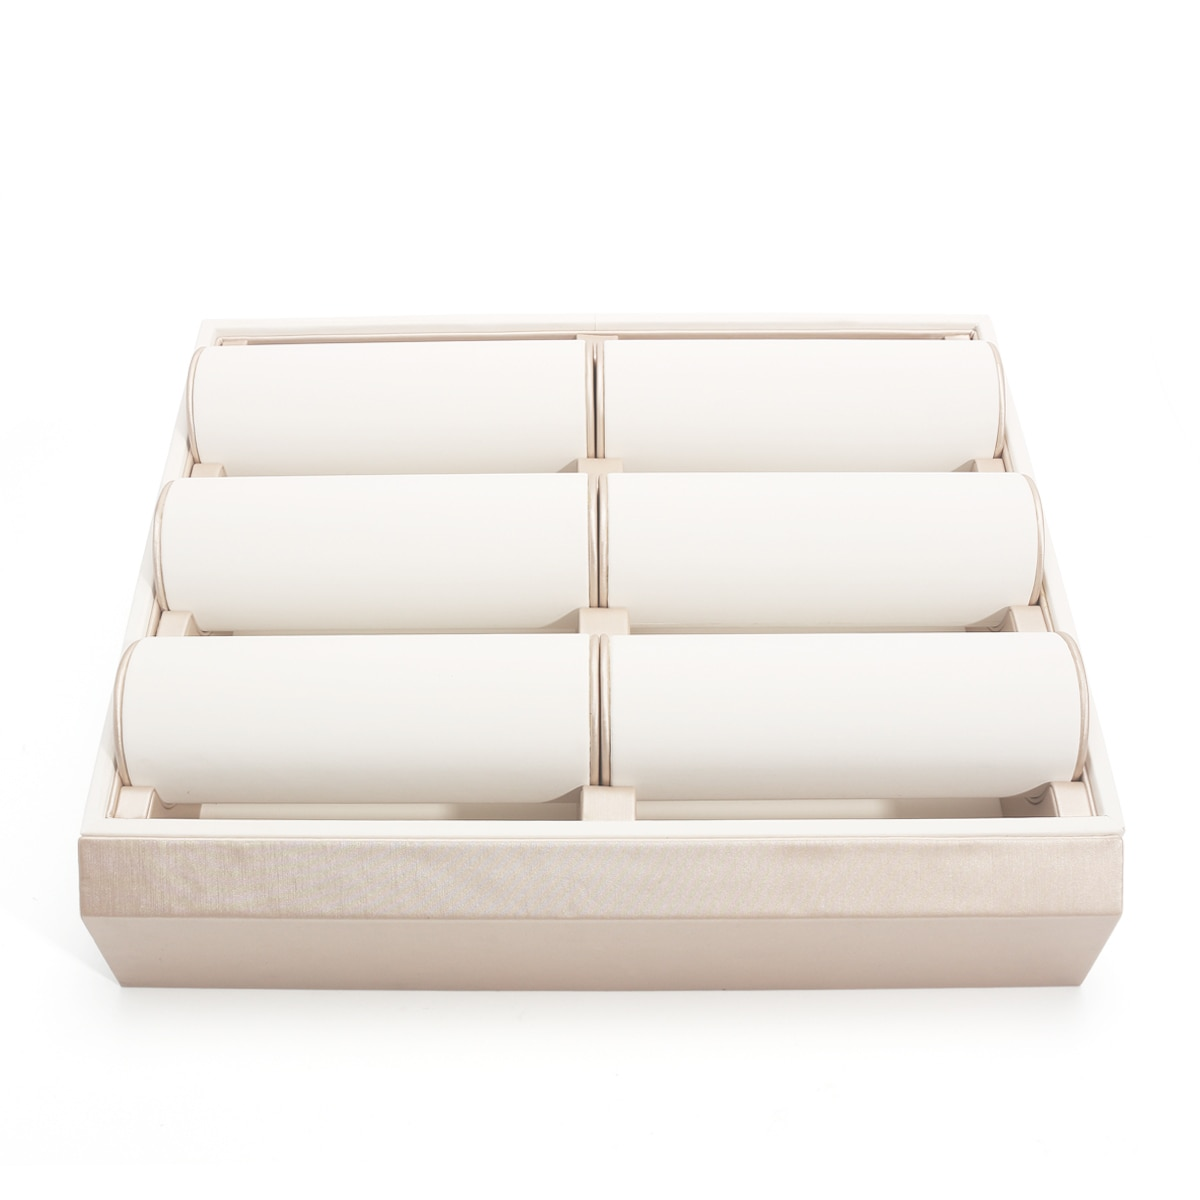 New Bracelet Jewelry Display Packaging Storage Stands White For Ring Earring Pendent Trays Jewellery Holder Showcase